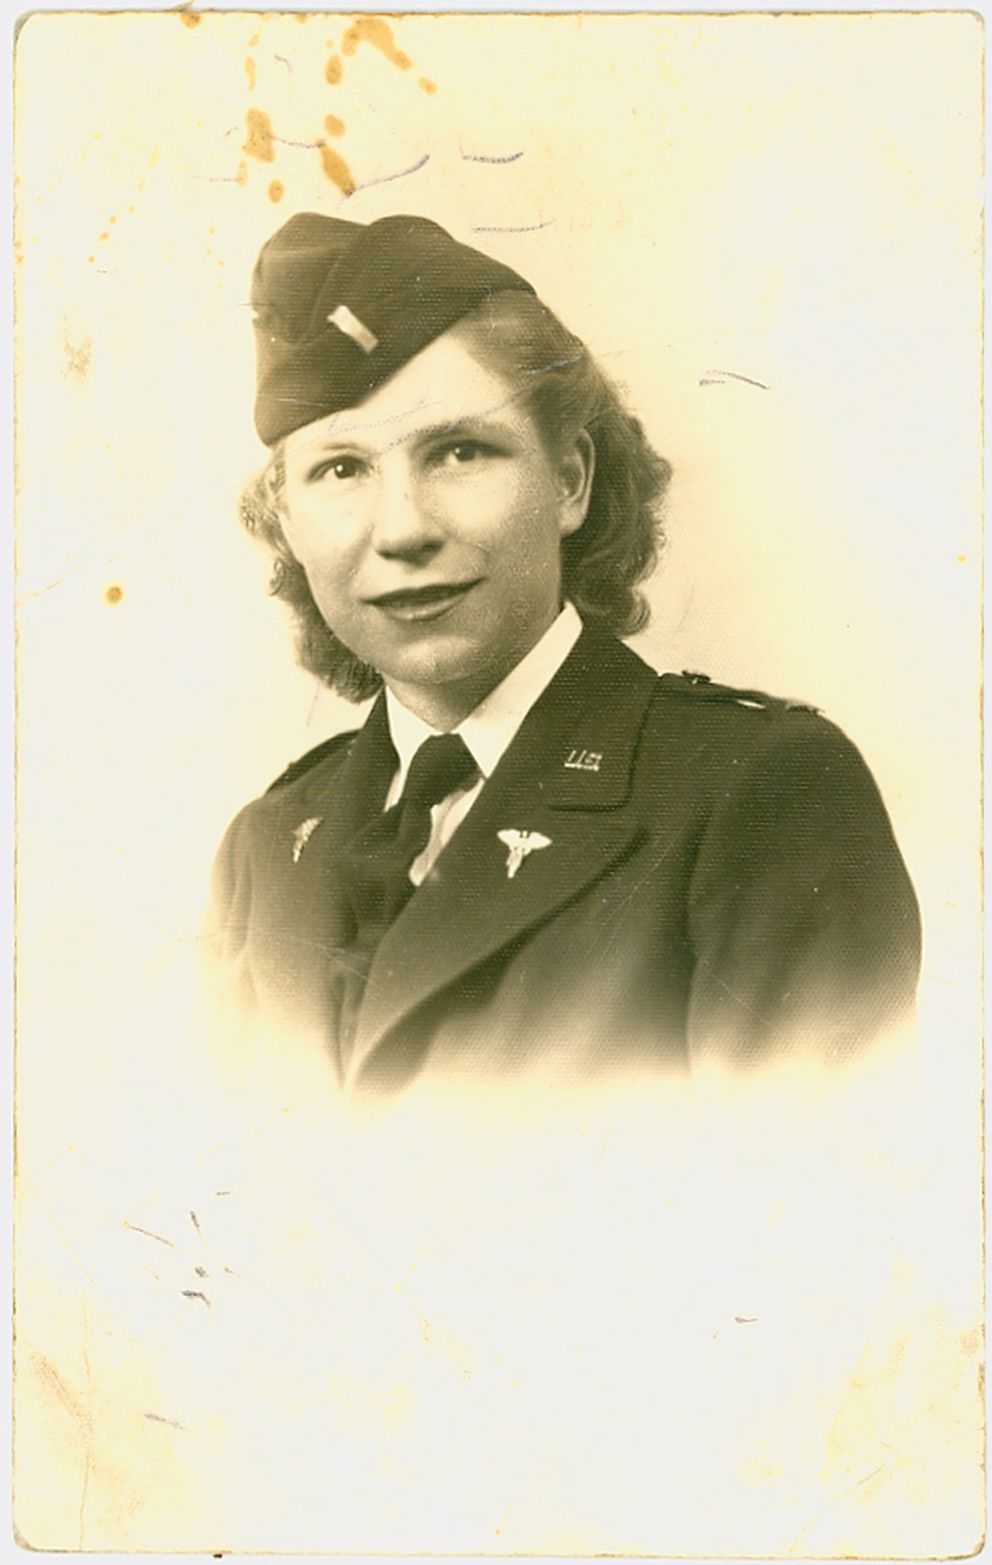 Eagle River's Charlotte Schwid was a WWII Army nurse who served on D-Day in 1944. Schwid will turn 100 on Wednesday. (Photo courtersy of Sharon White)